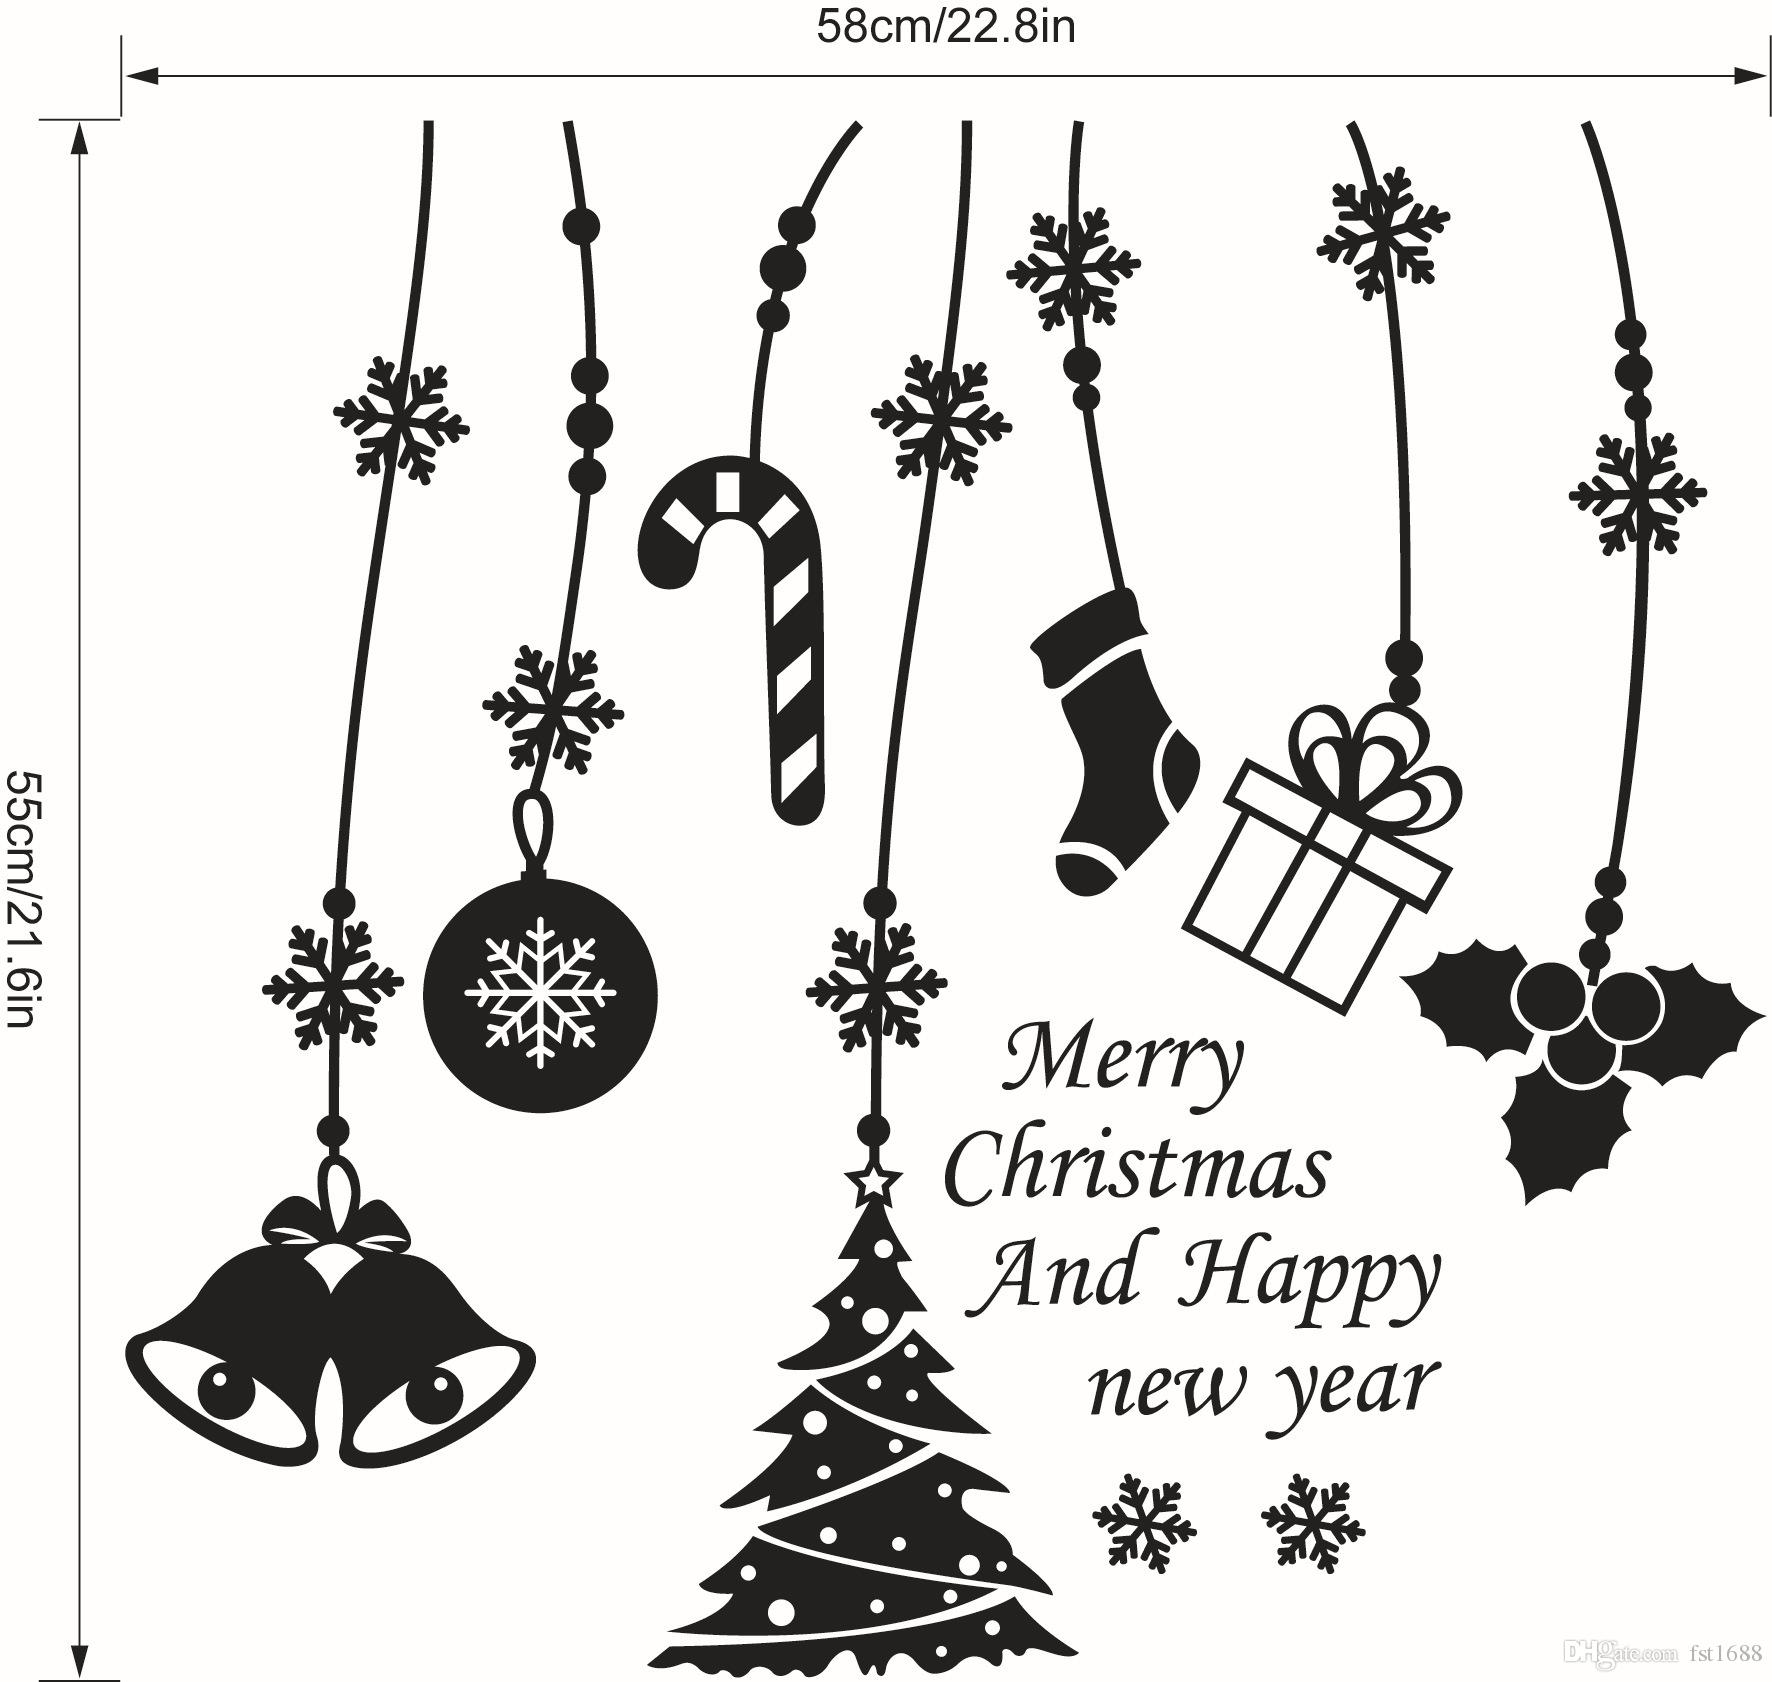 Christmas Vinyl Decals.Merry Christmas Vinyl Decals Bell Tree Snowflake Wall Stickers Shop Office Window Xmas Wallpaper Art Party Gift Living Room Home Decoration Cool Wall